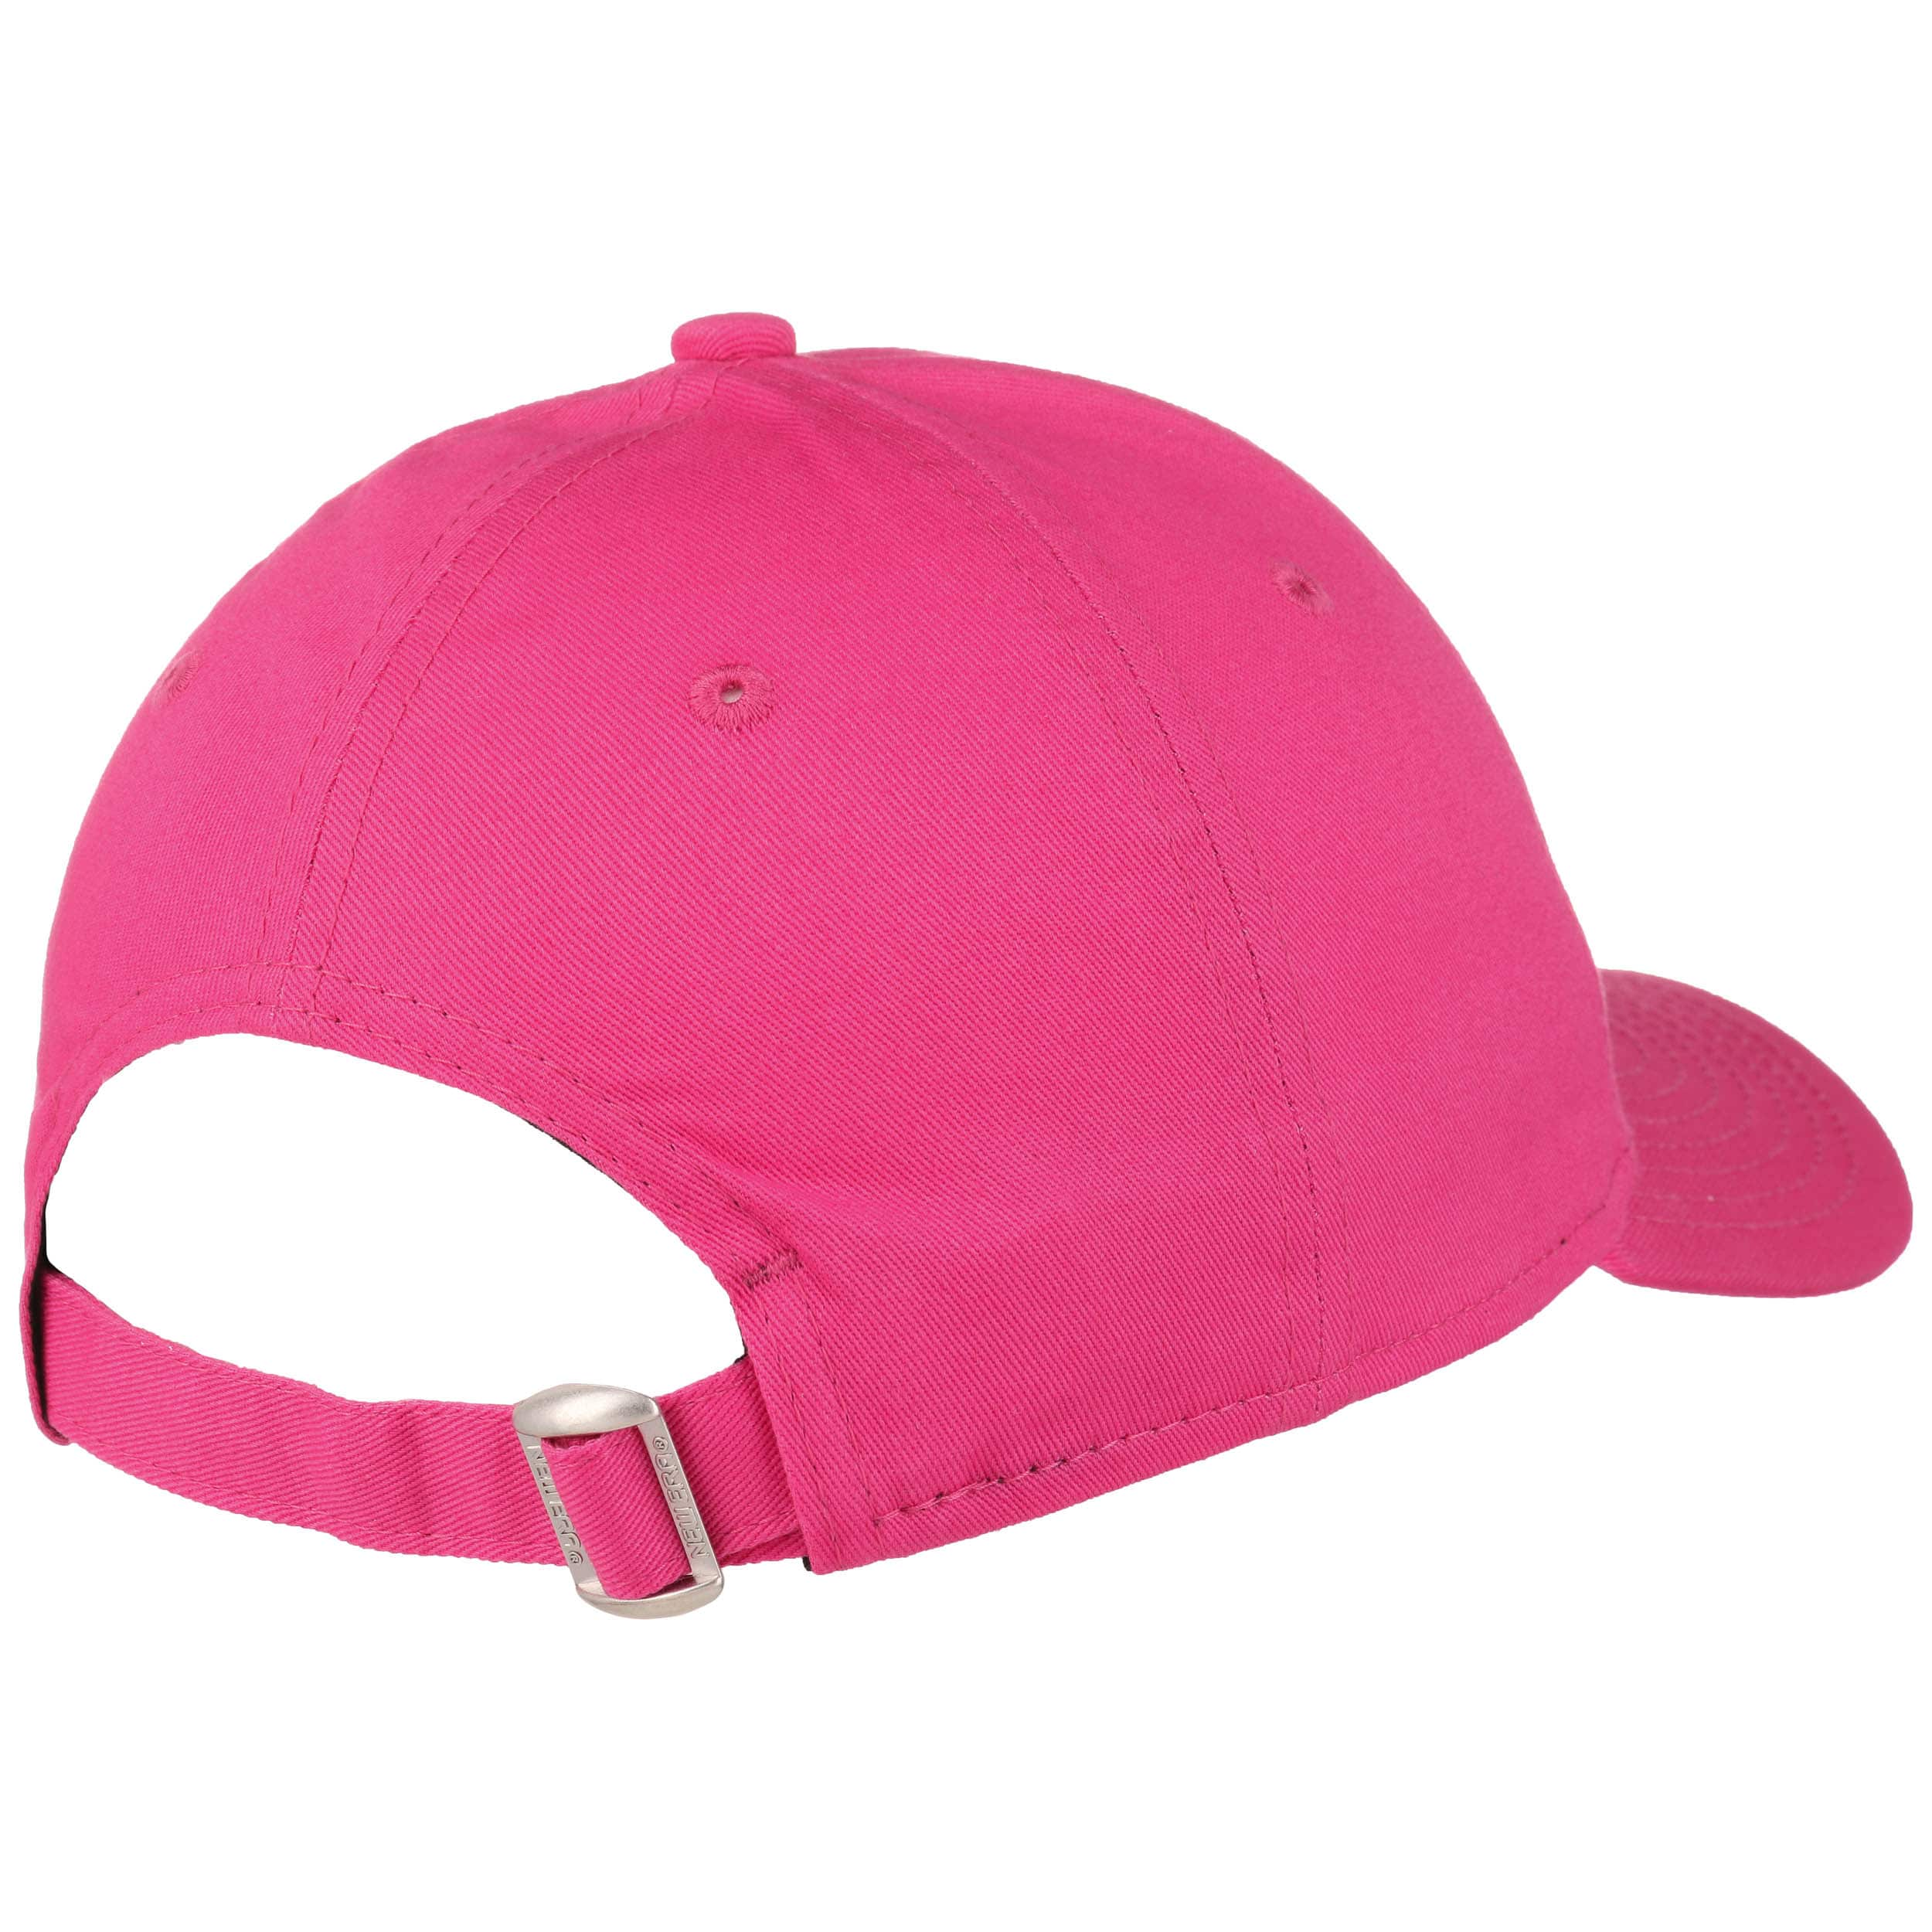 ... nero 3 · Cappellino 9Forty JUNIOR NY by New Era - pink 3 ... a2ac08c41394